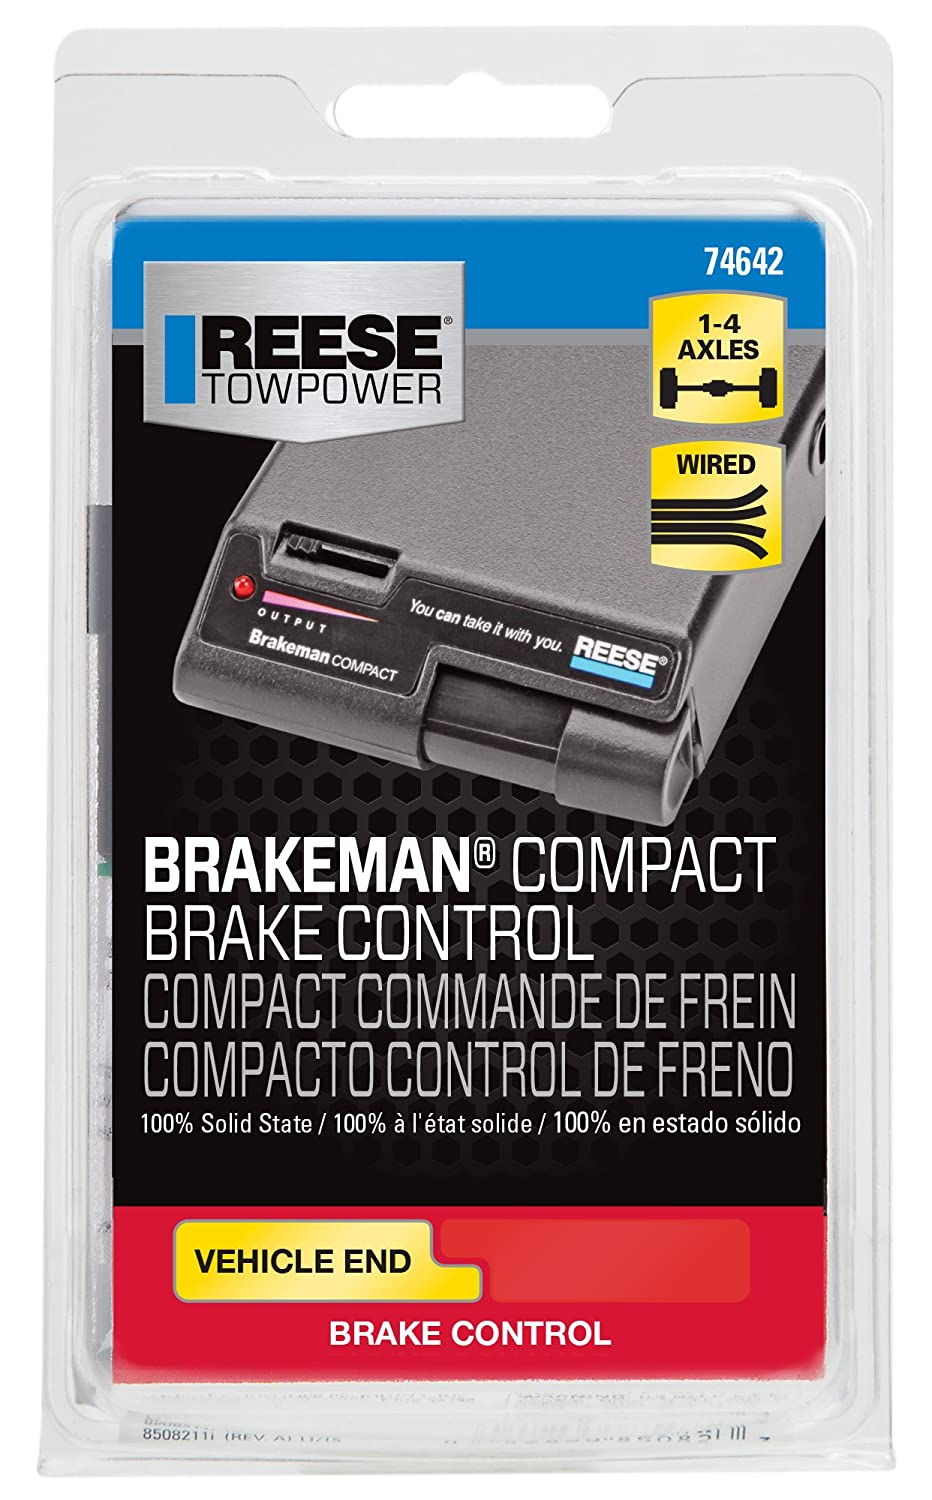 Reese Towpower 74642 Brakeman Timed Compact Brake Wiring Diagram For Tandem Axle Trailer Control Automotive